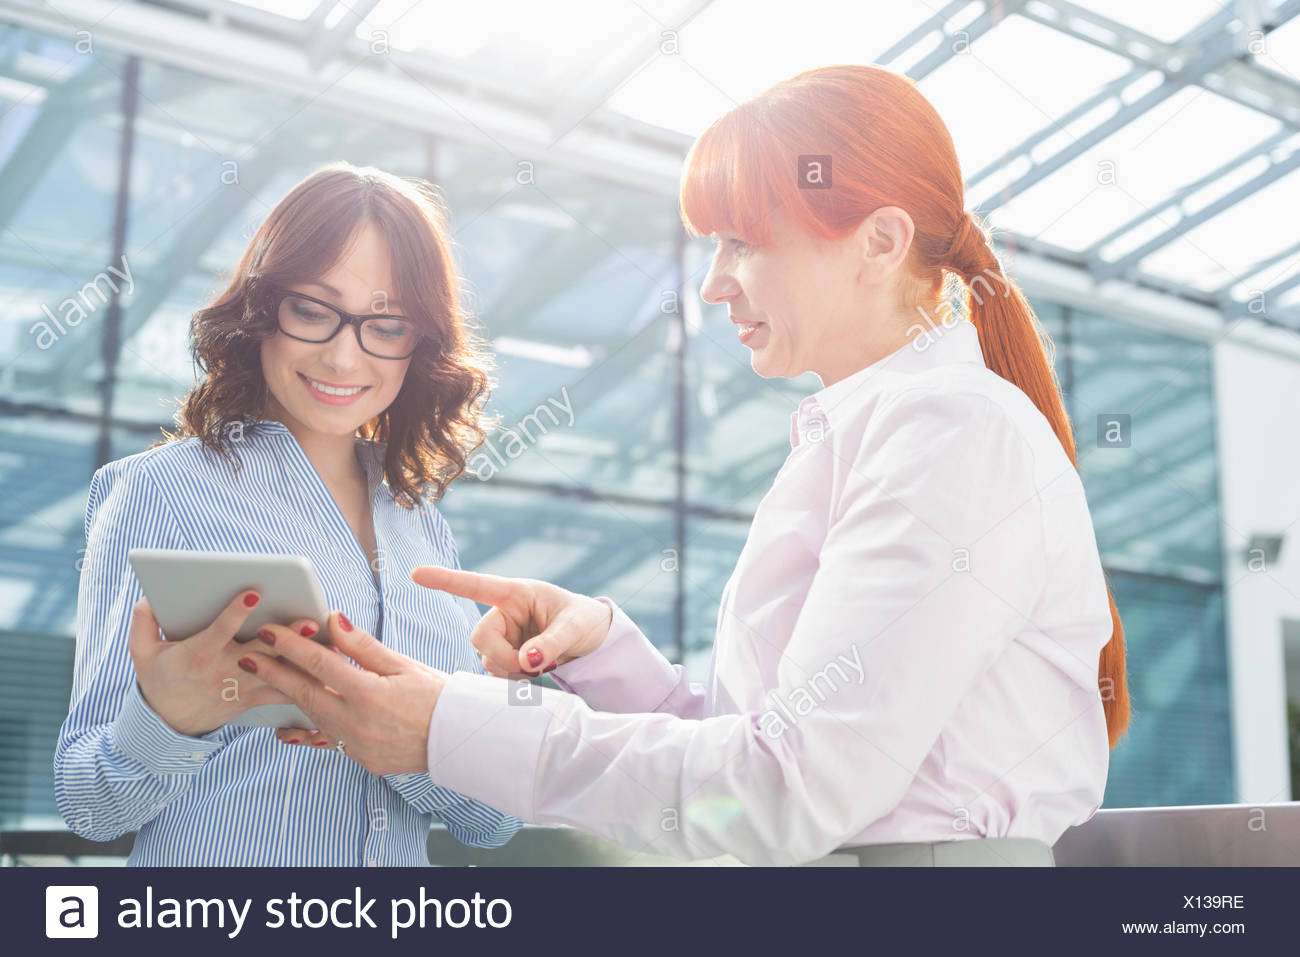 Businesswoman showing something on tablet PC to colleague in office - Stock Image